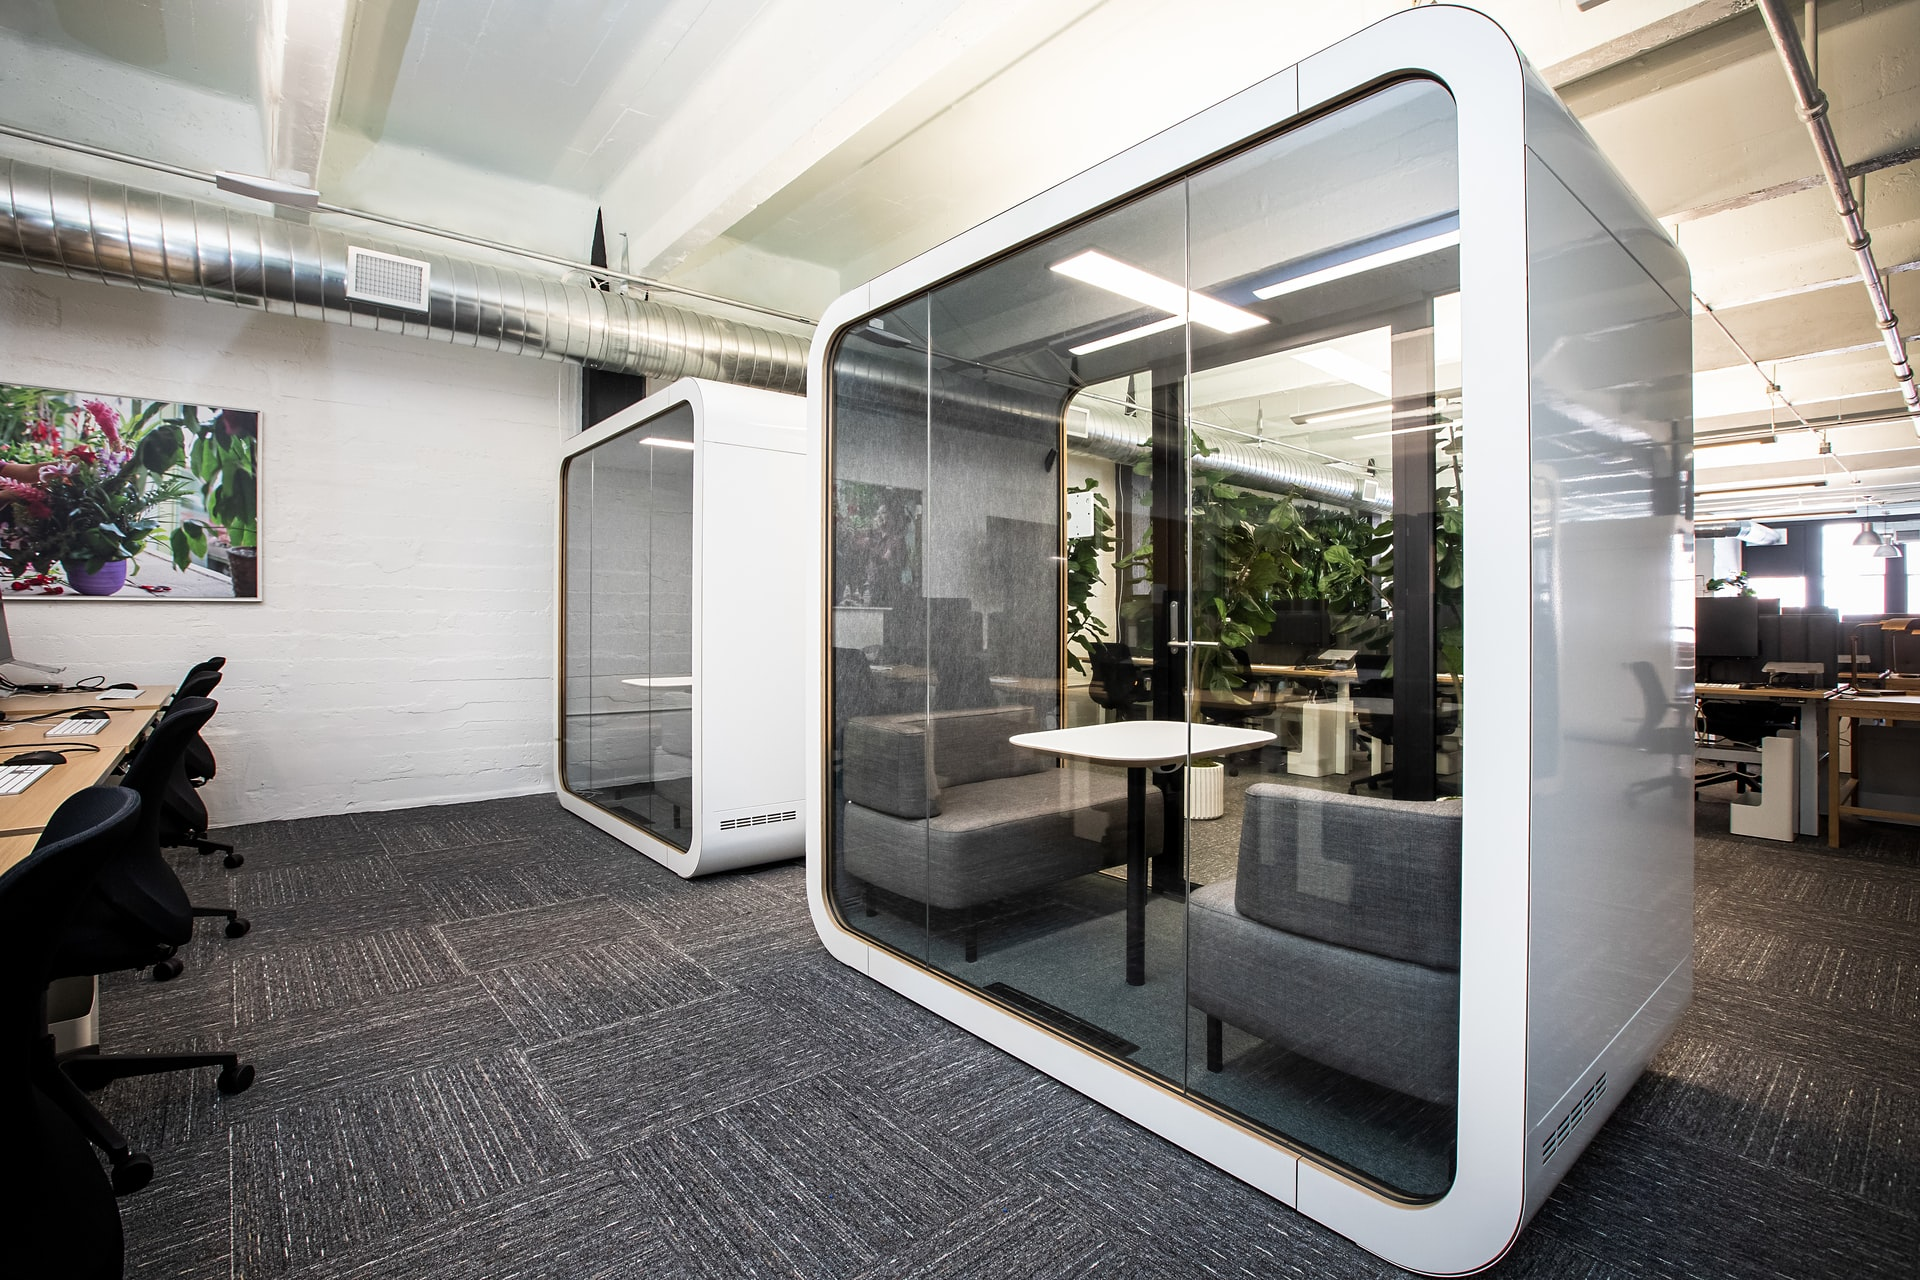 Office phone booth for private calls. Photo by @uneebo_office_design via Unsplash